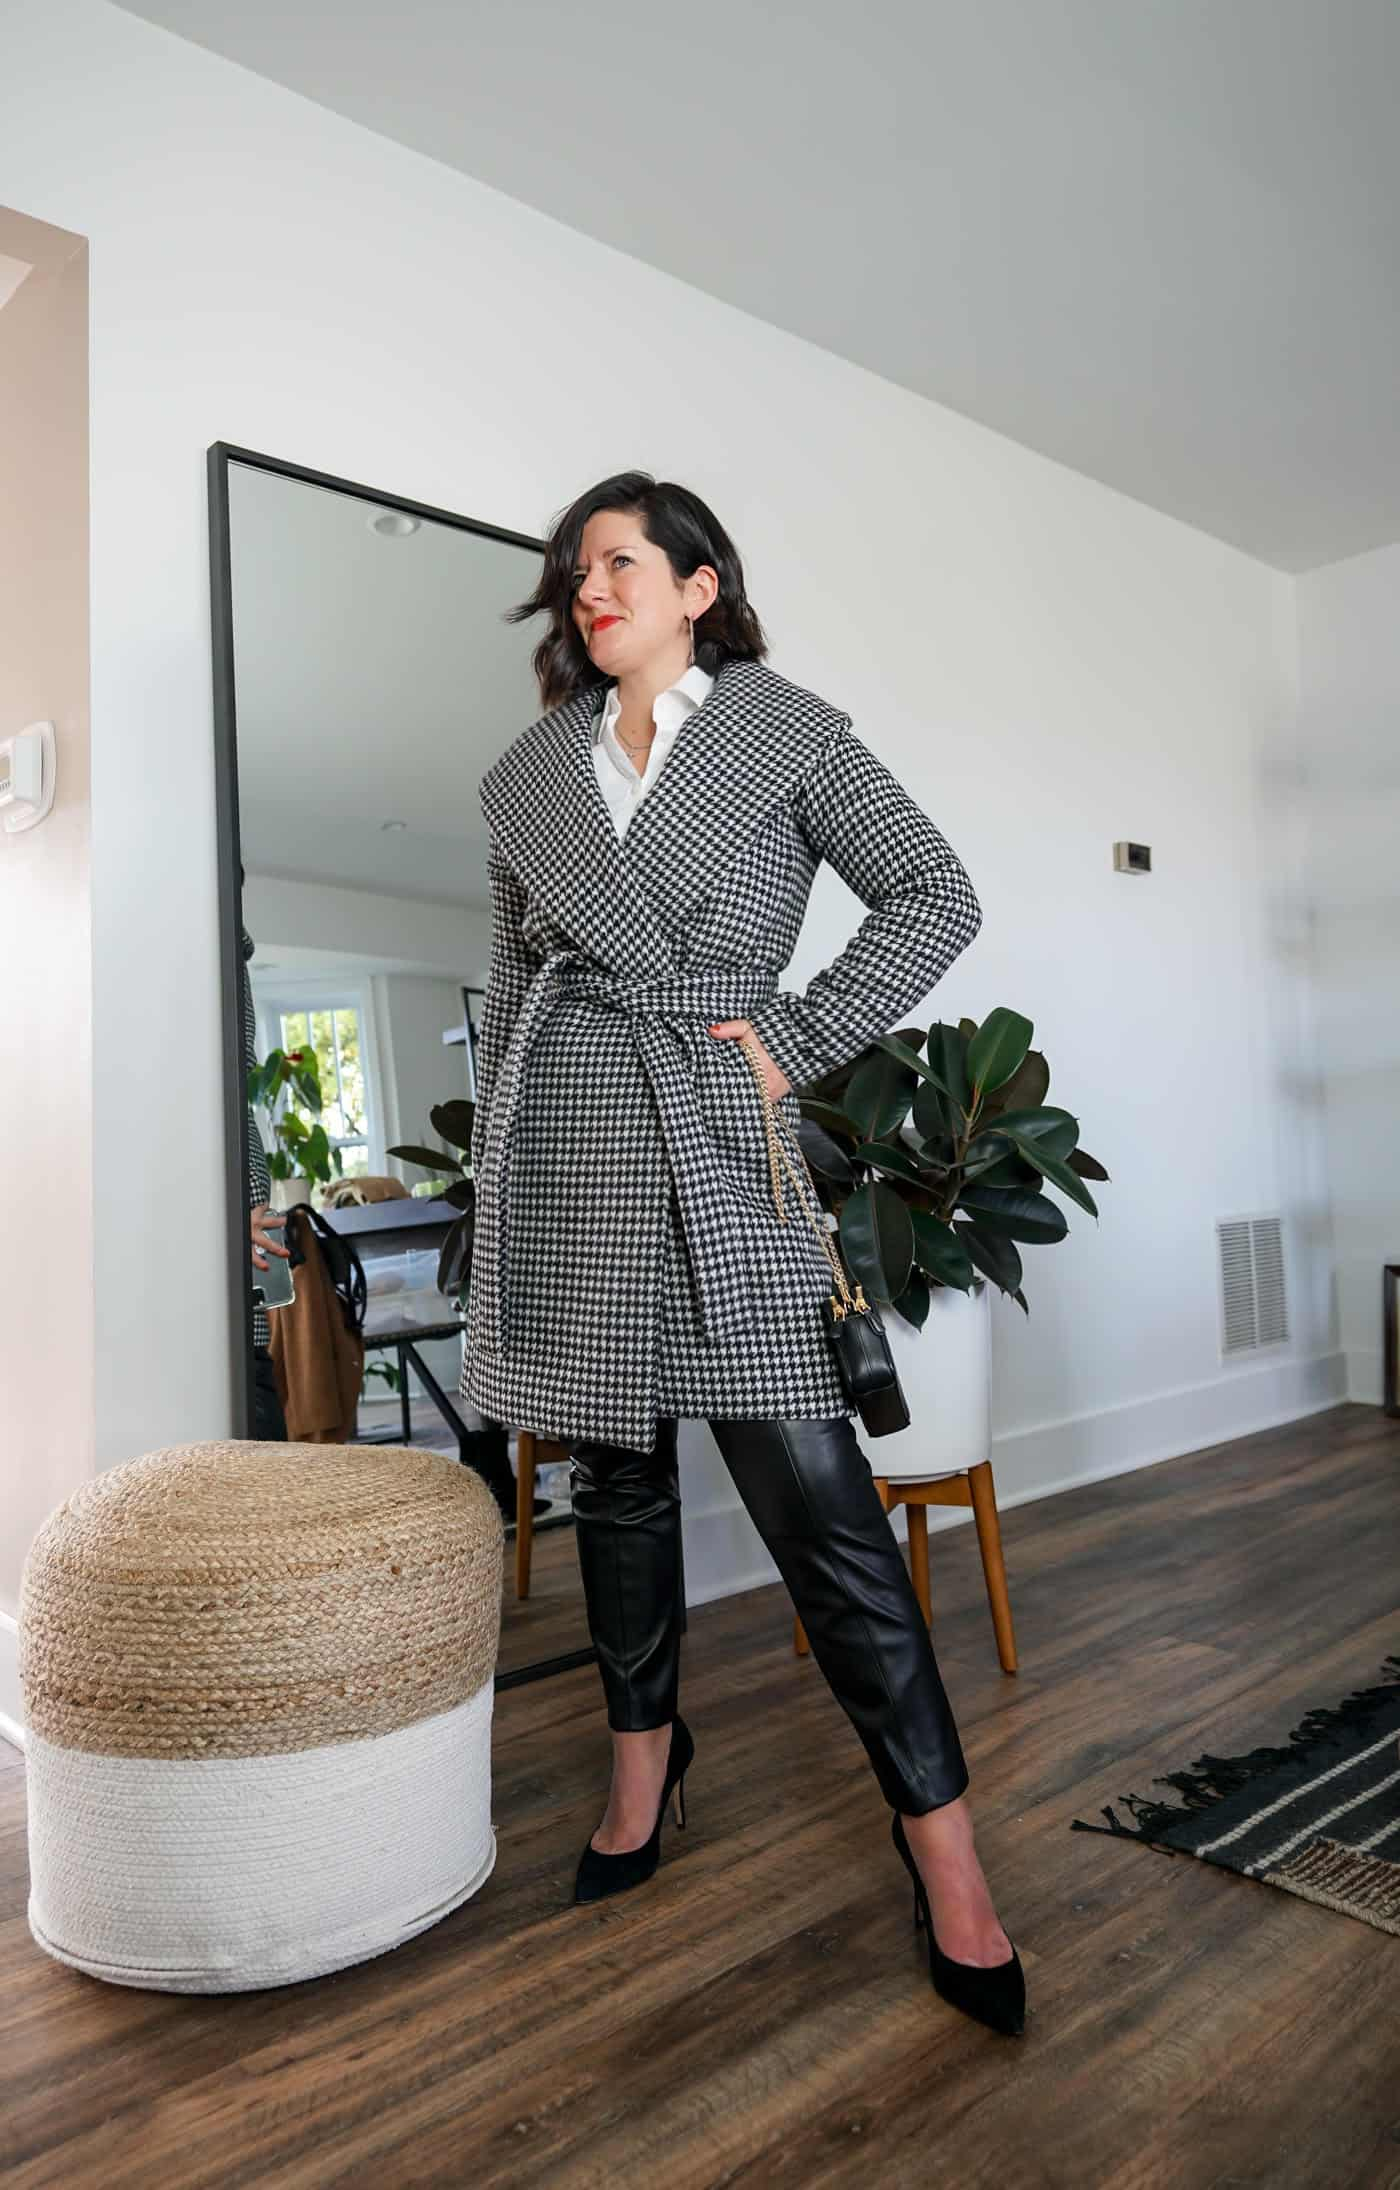 A Lily Love Affair wearing womes faux leather pants with a black and white plaid jacket, a white blouse and black heels